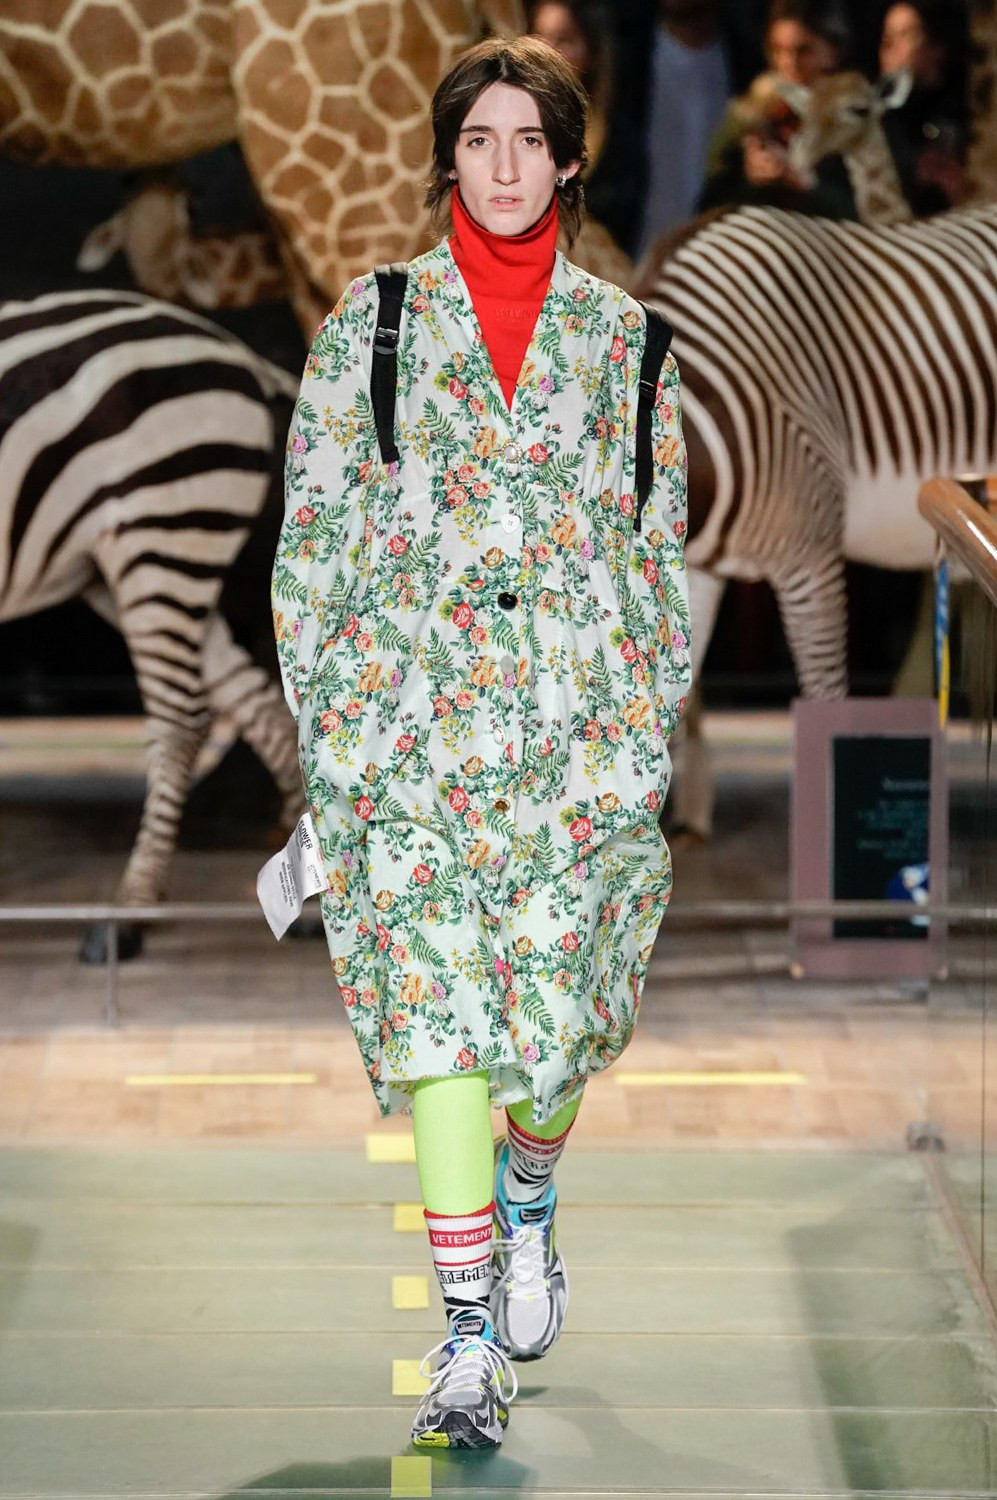 https---vetements-aw19-dtf-magazine.com-image-2019-01-vetements-fall-winter-2019-paris-fashion-week-23